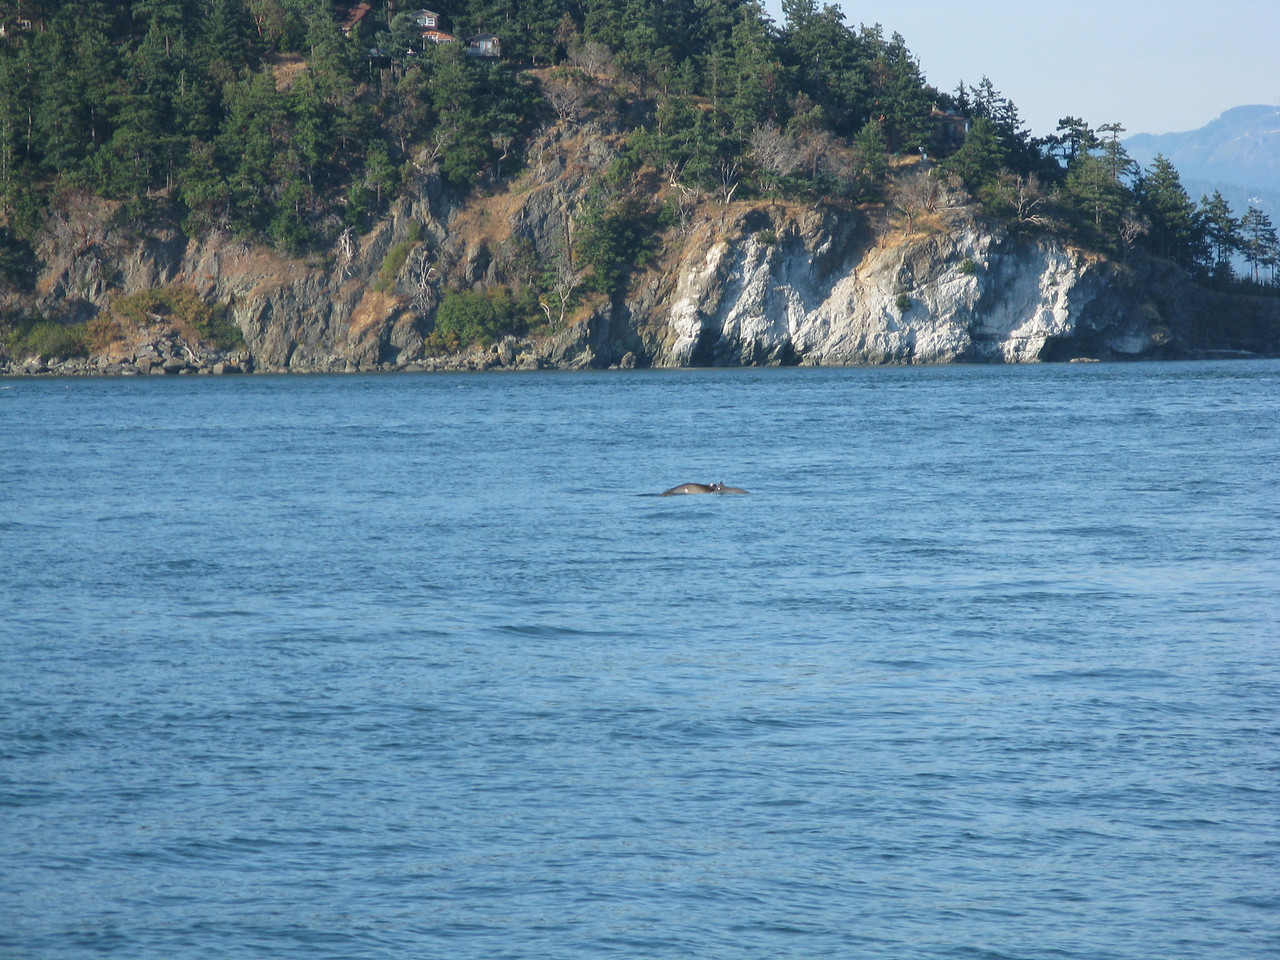 On our first day, we saw porpoises in Fidalgo Bay.  We are too far away to tell why kind of porpoise these are, but Doll's porpoises are common in the Puget Sound.